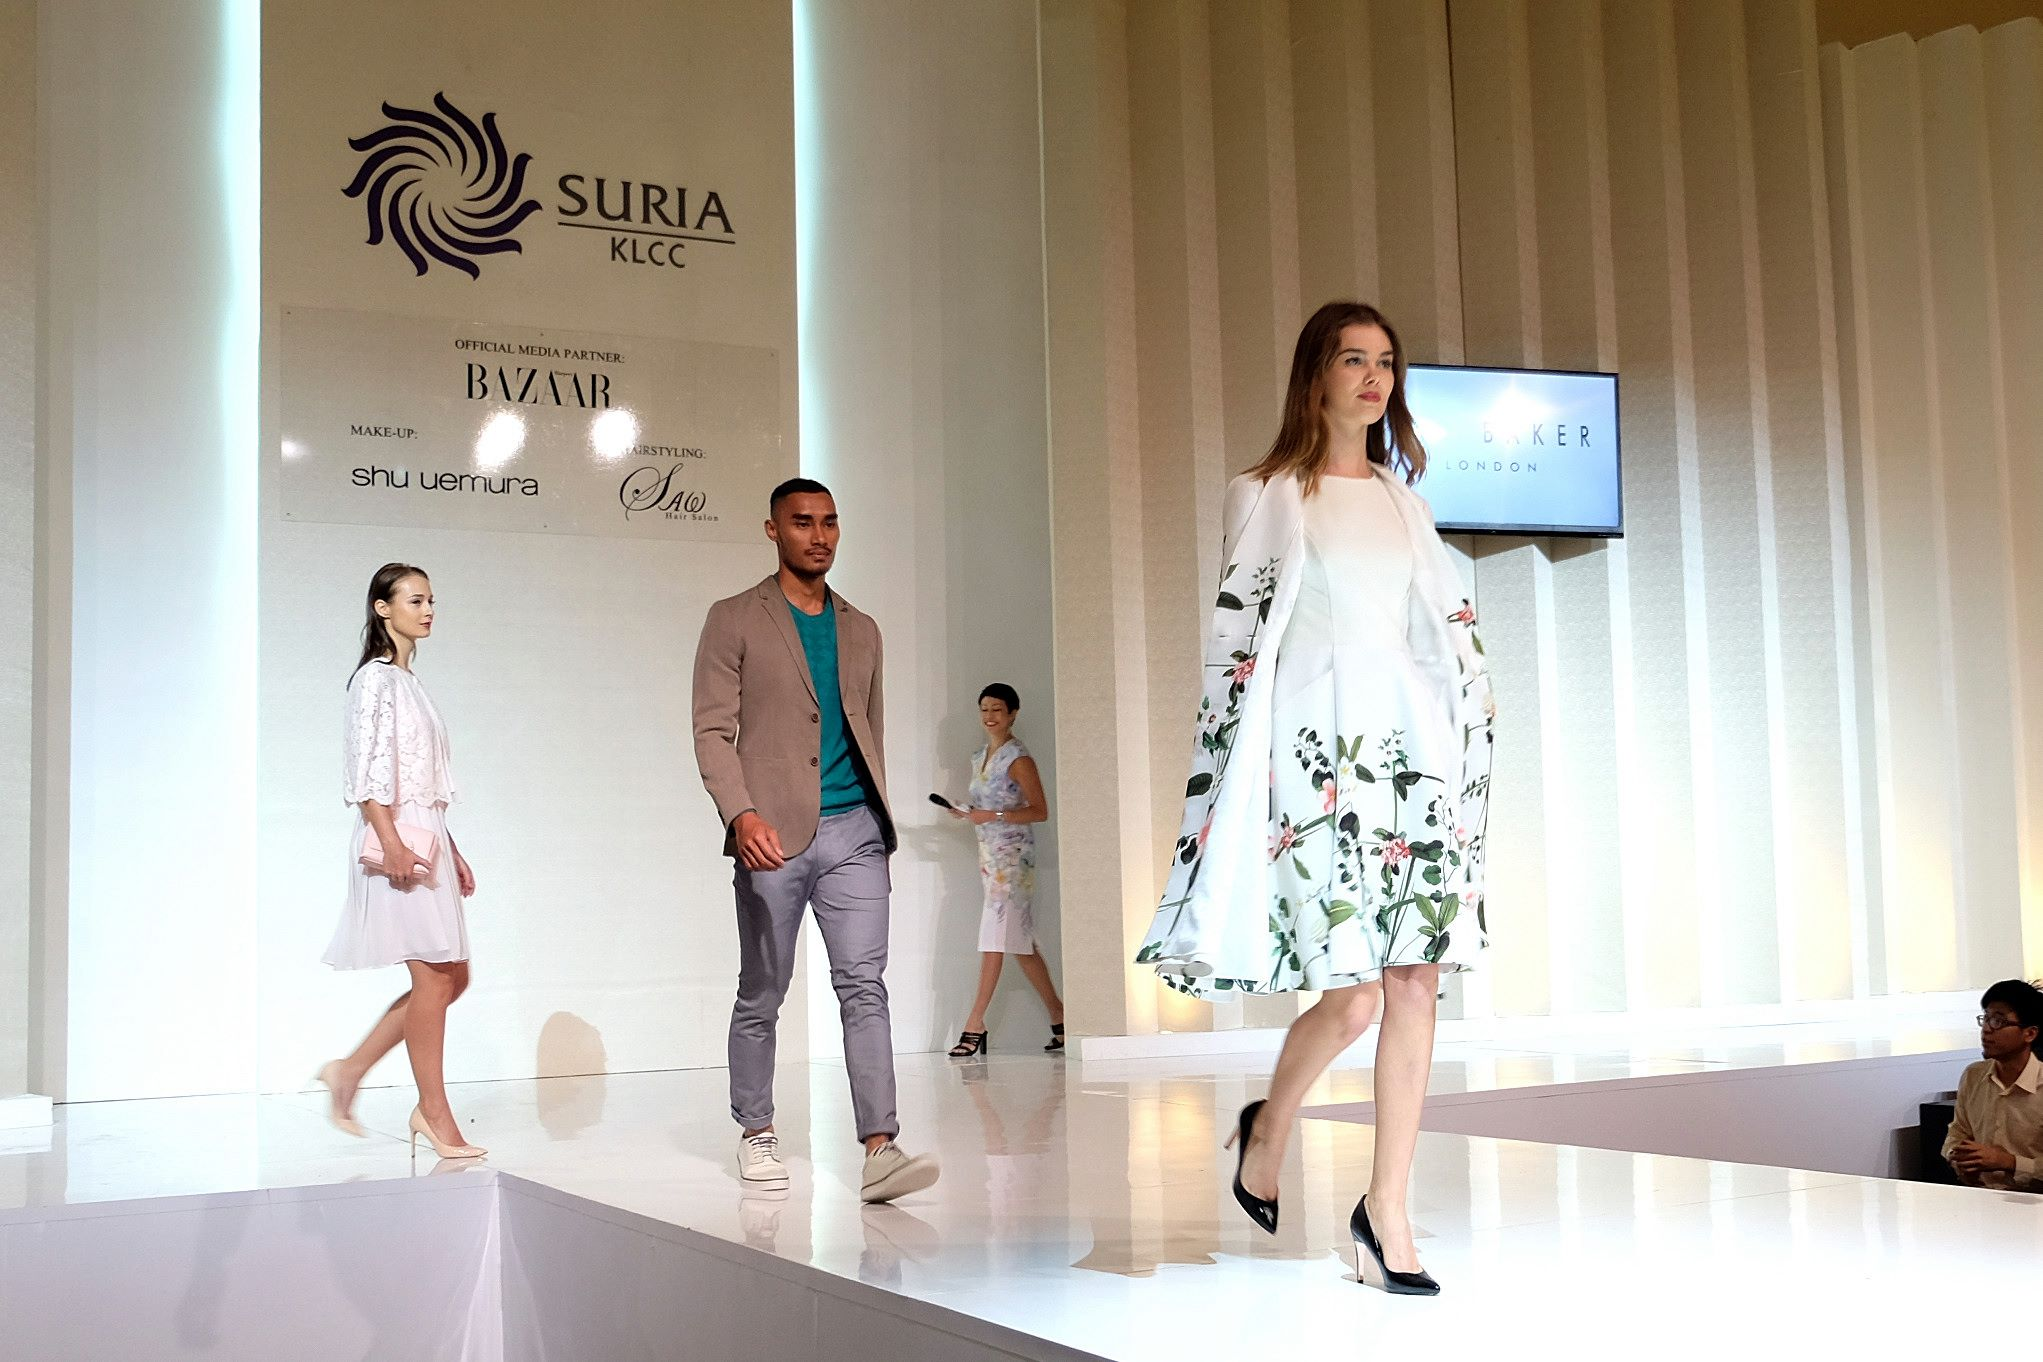 ff56e4e4064f Ted Baker Spring Summer 2016 Collection at KLCC Fashion Week 2016 ...